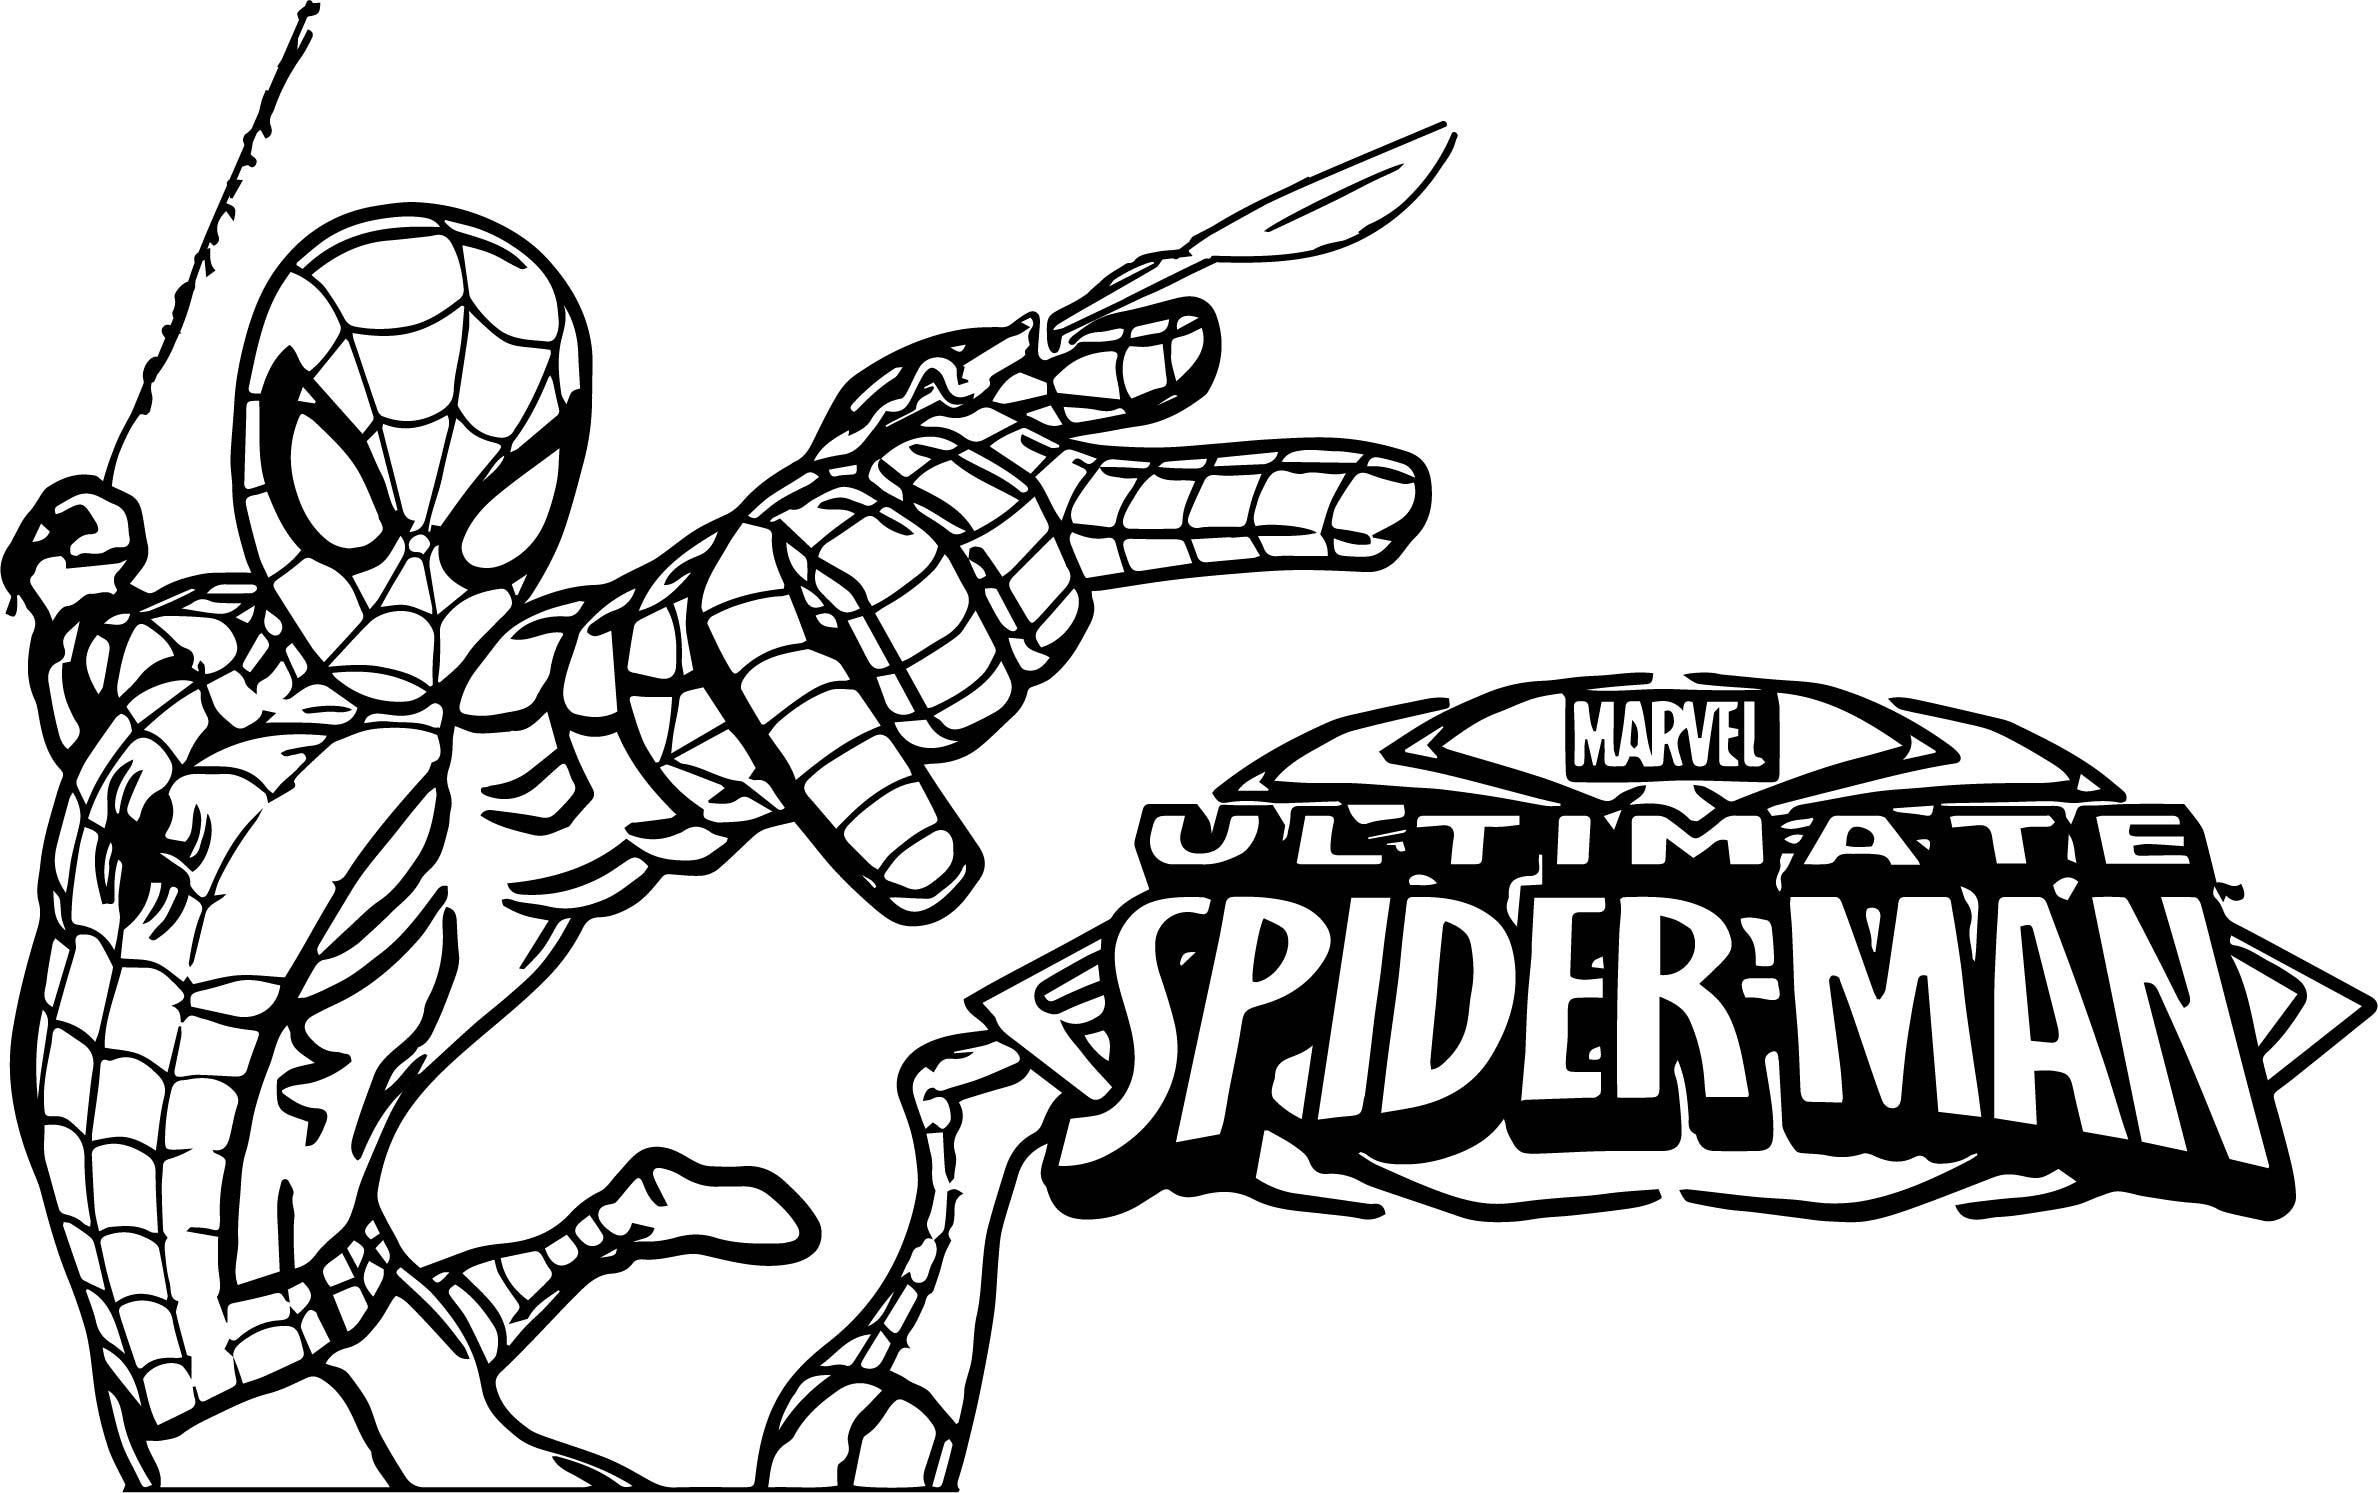 Crayola Ultimate Spiderman Mini Coloring Pages Learning